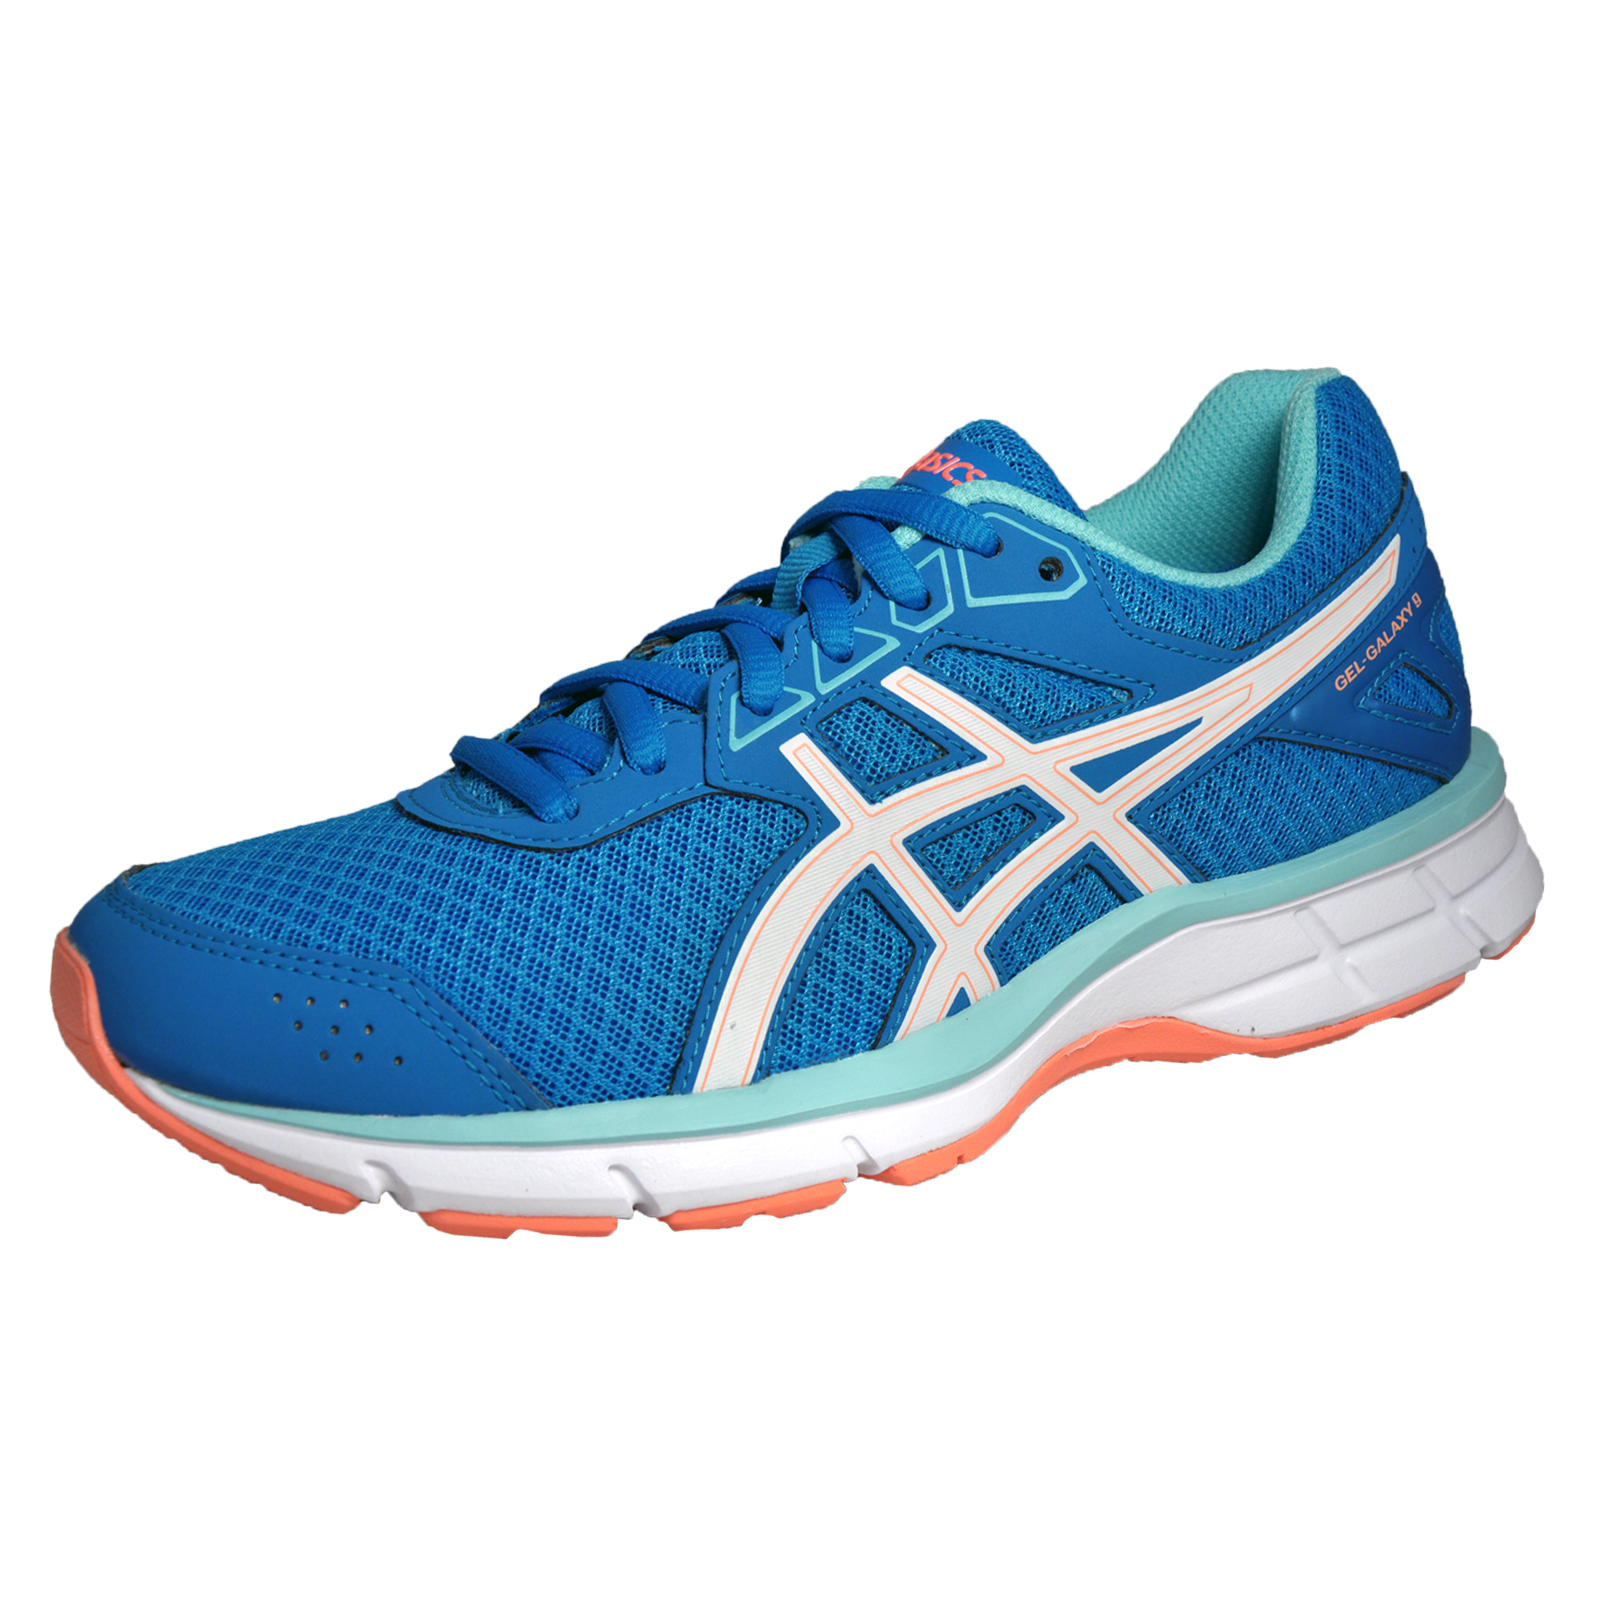 asics gel galaxy 9 womens running shoes gym fitness. Black Bedroom Furniture Sets. Home Design Ideas